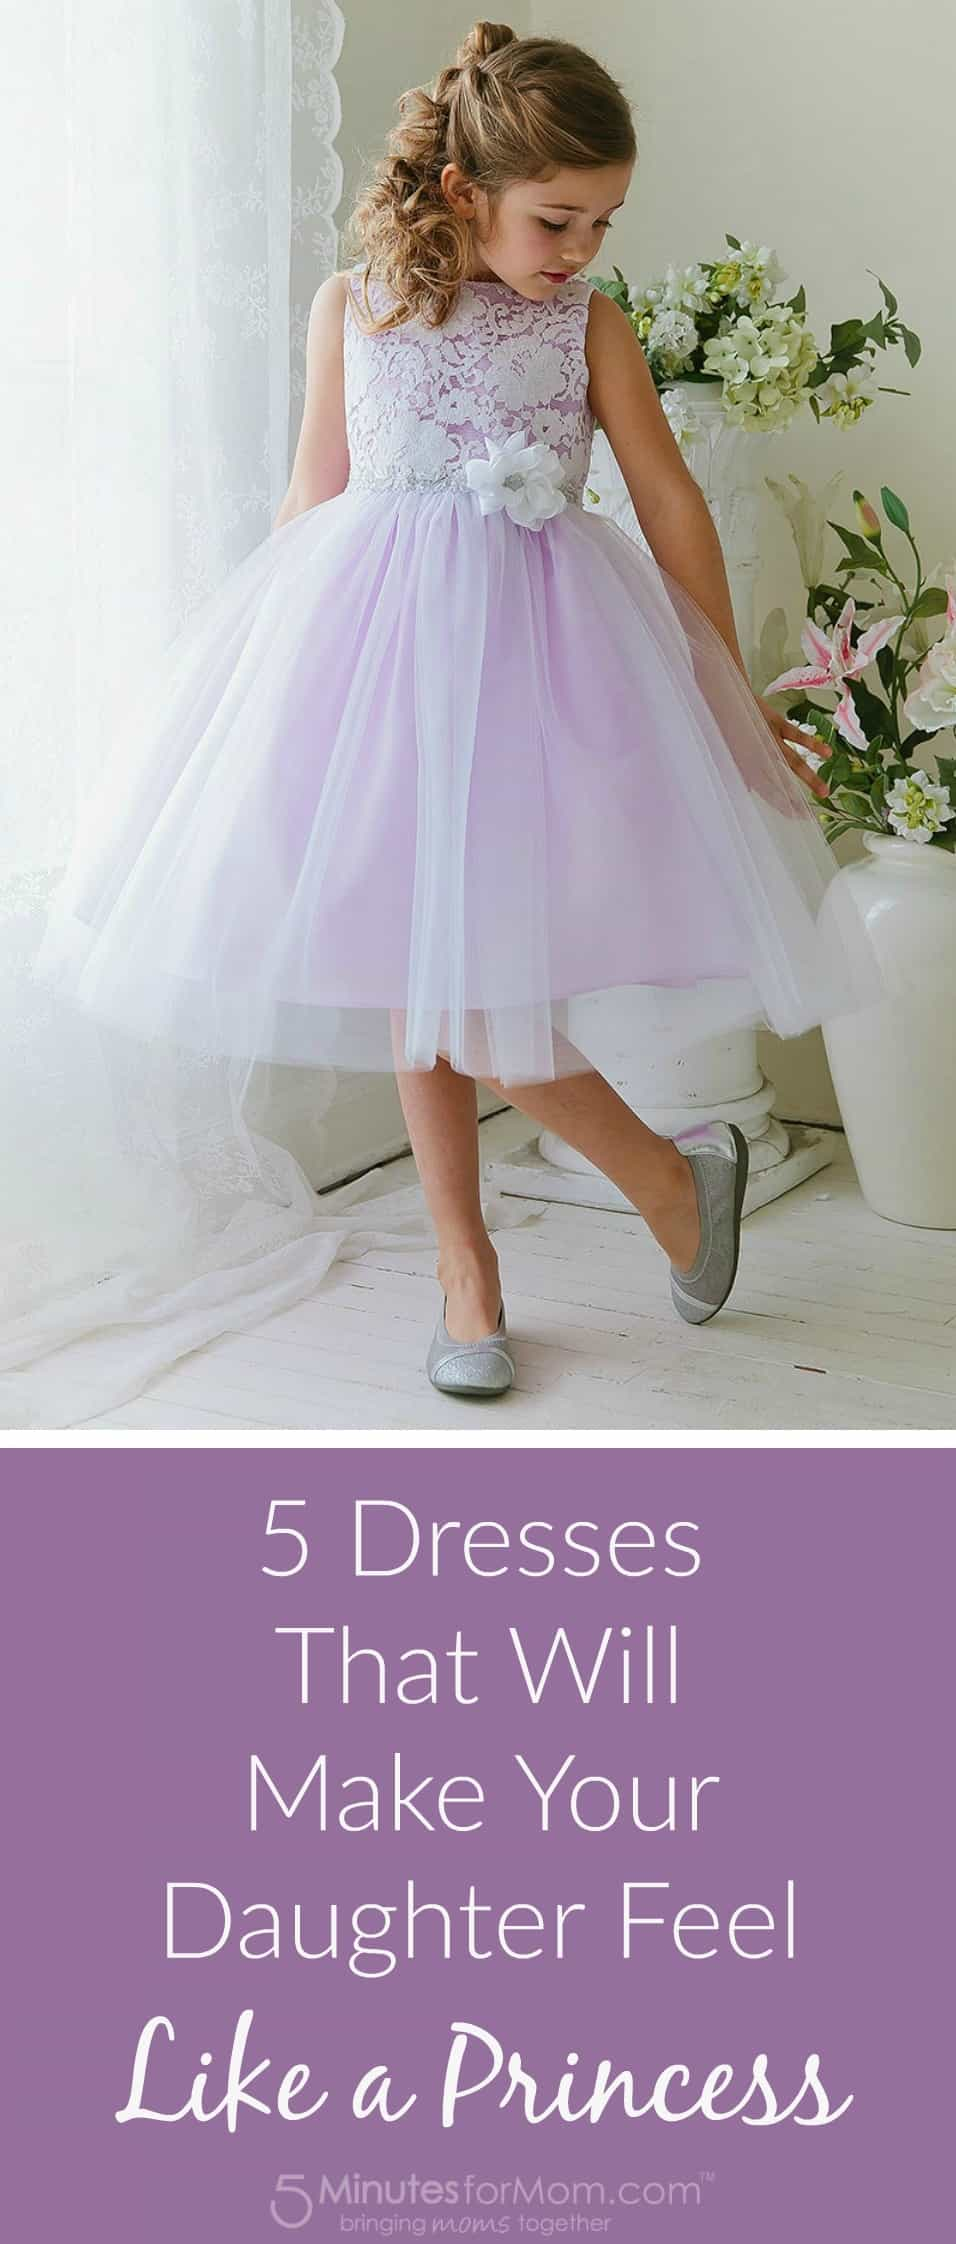 5 dresses that will make your daughter feel like a princess